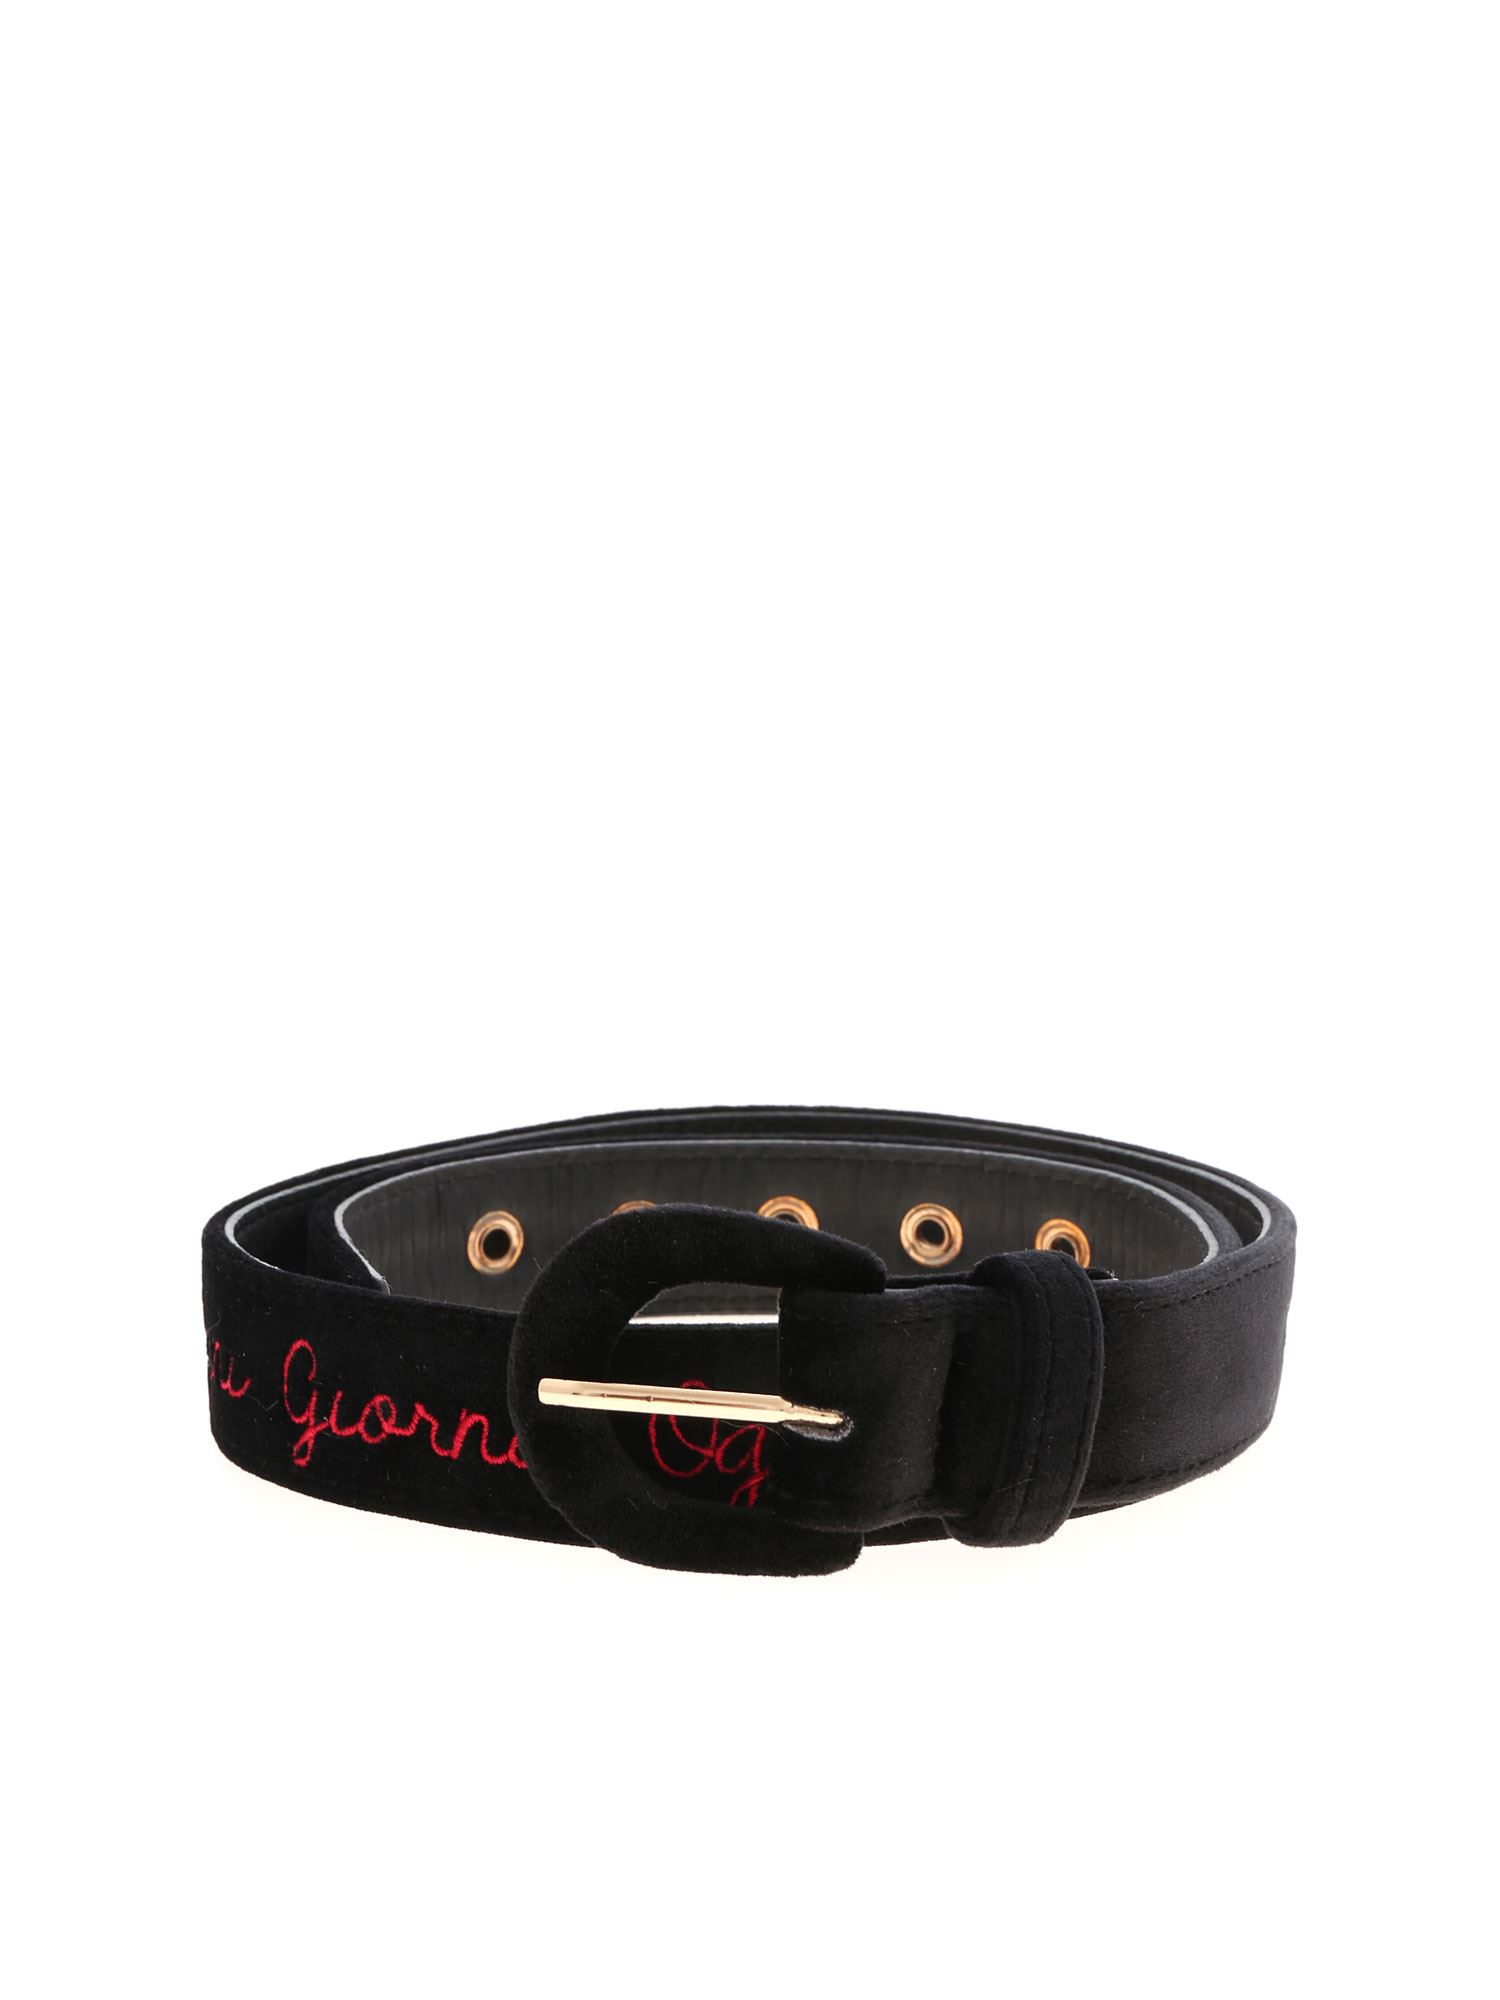 Giada Benincasa LOGO EMBROIDERY VELVET BELT IN BLACK